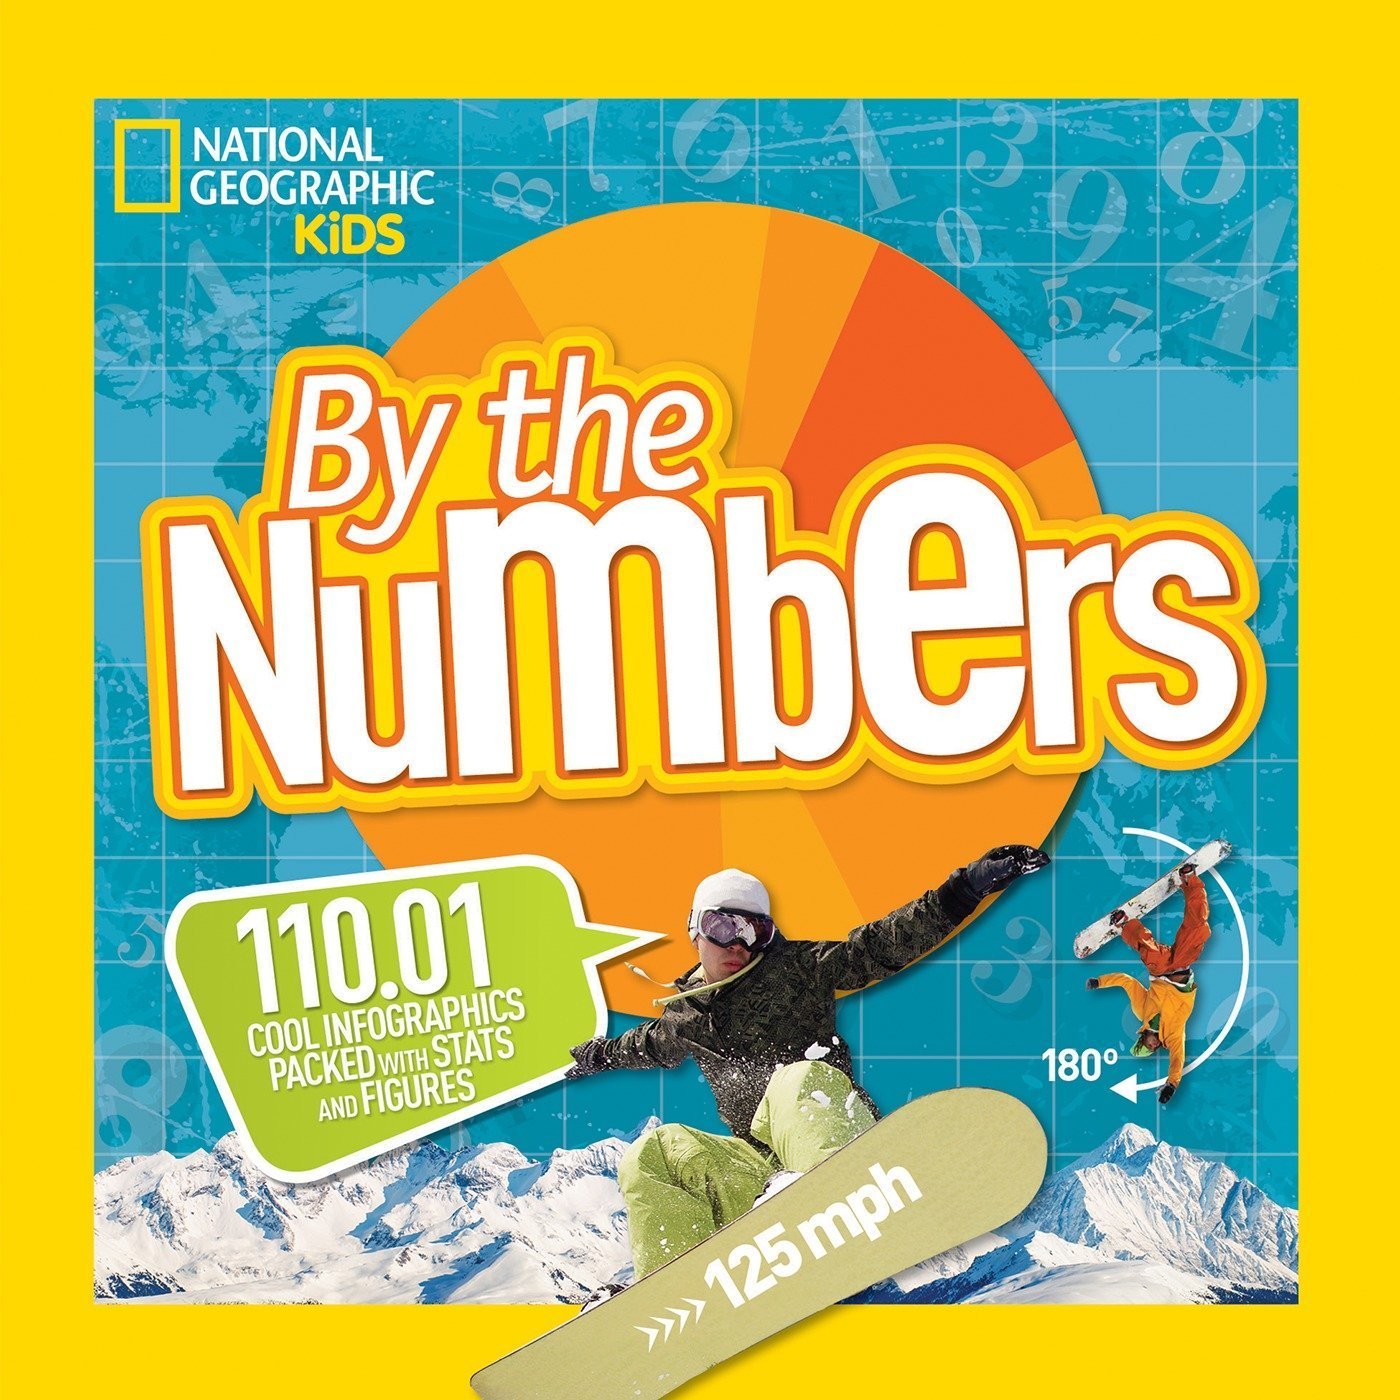 d0721507a5 By the Numbers  110.01 Cool Infographics Packed with Stats and ...